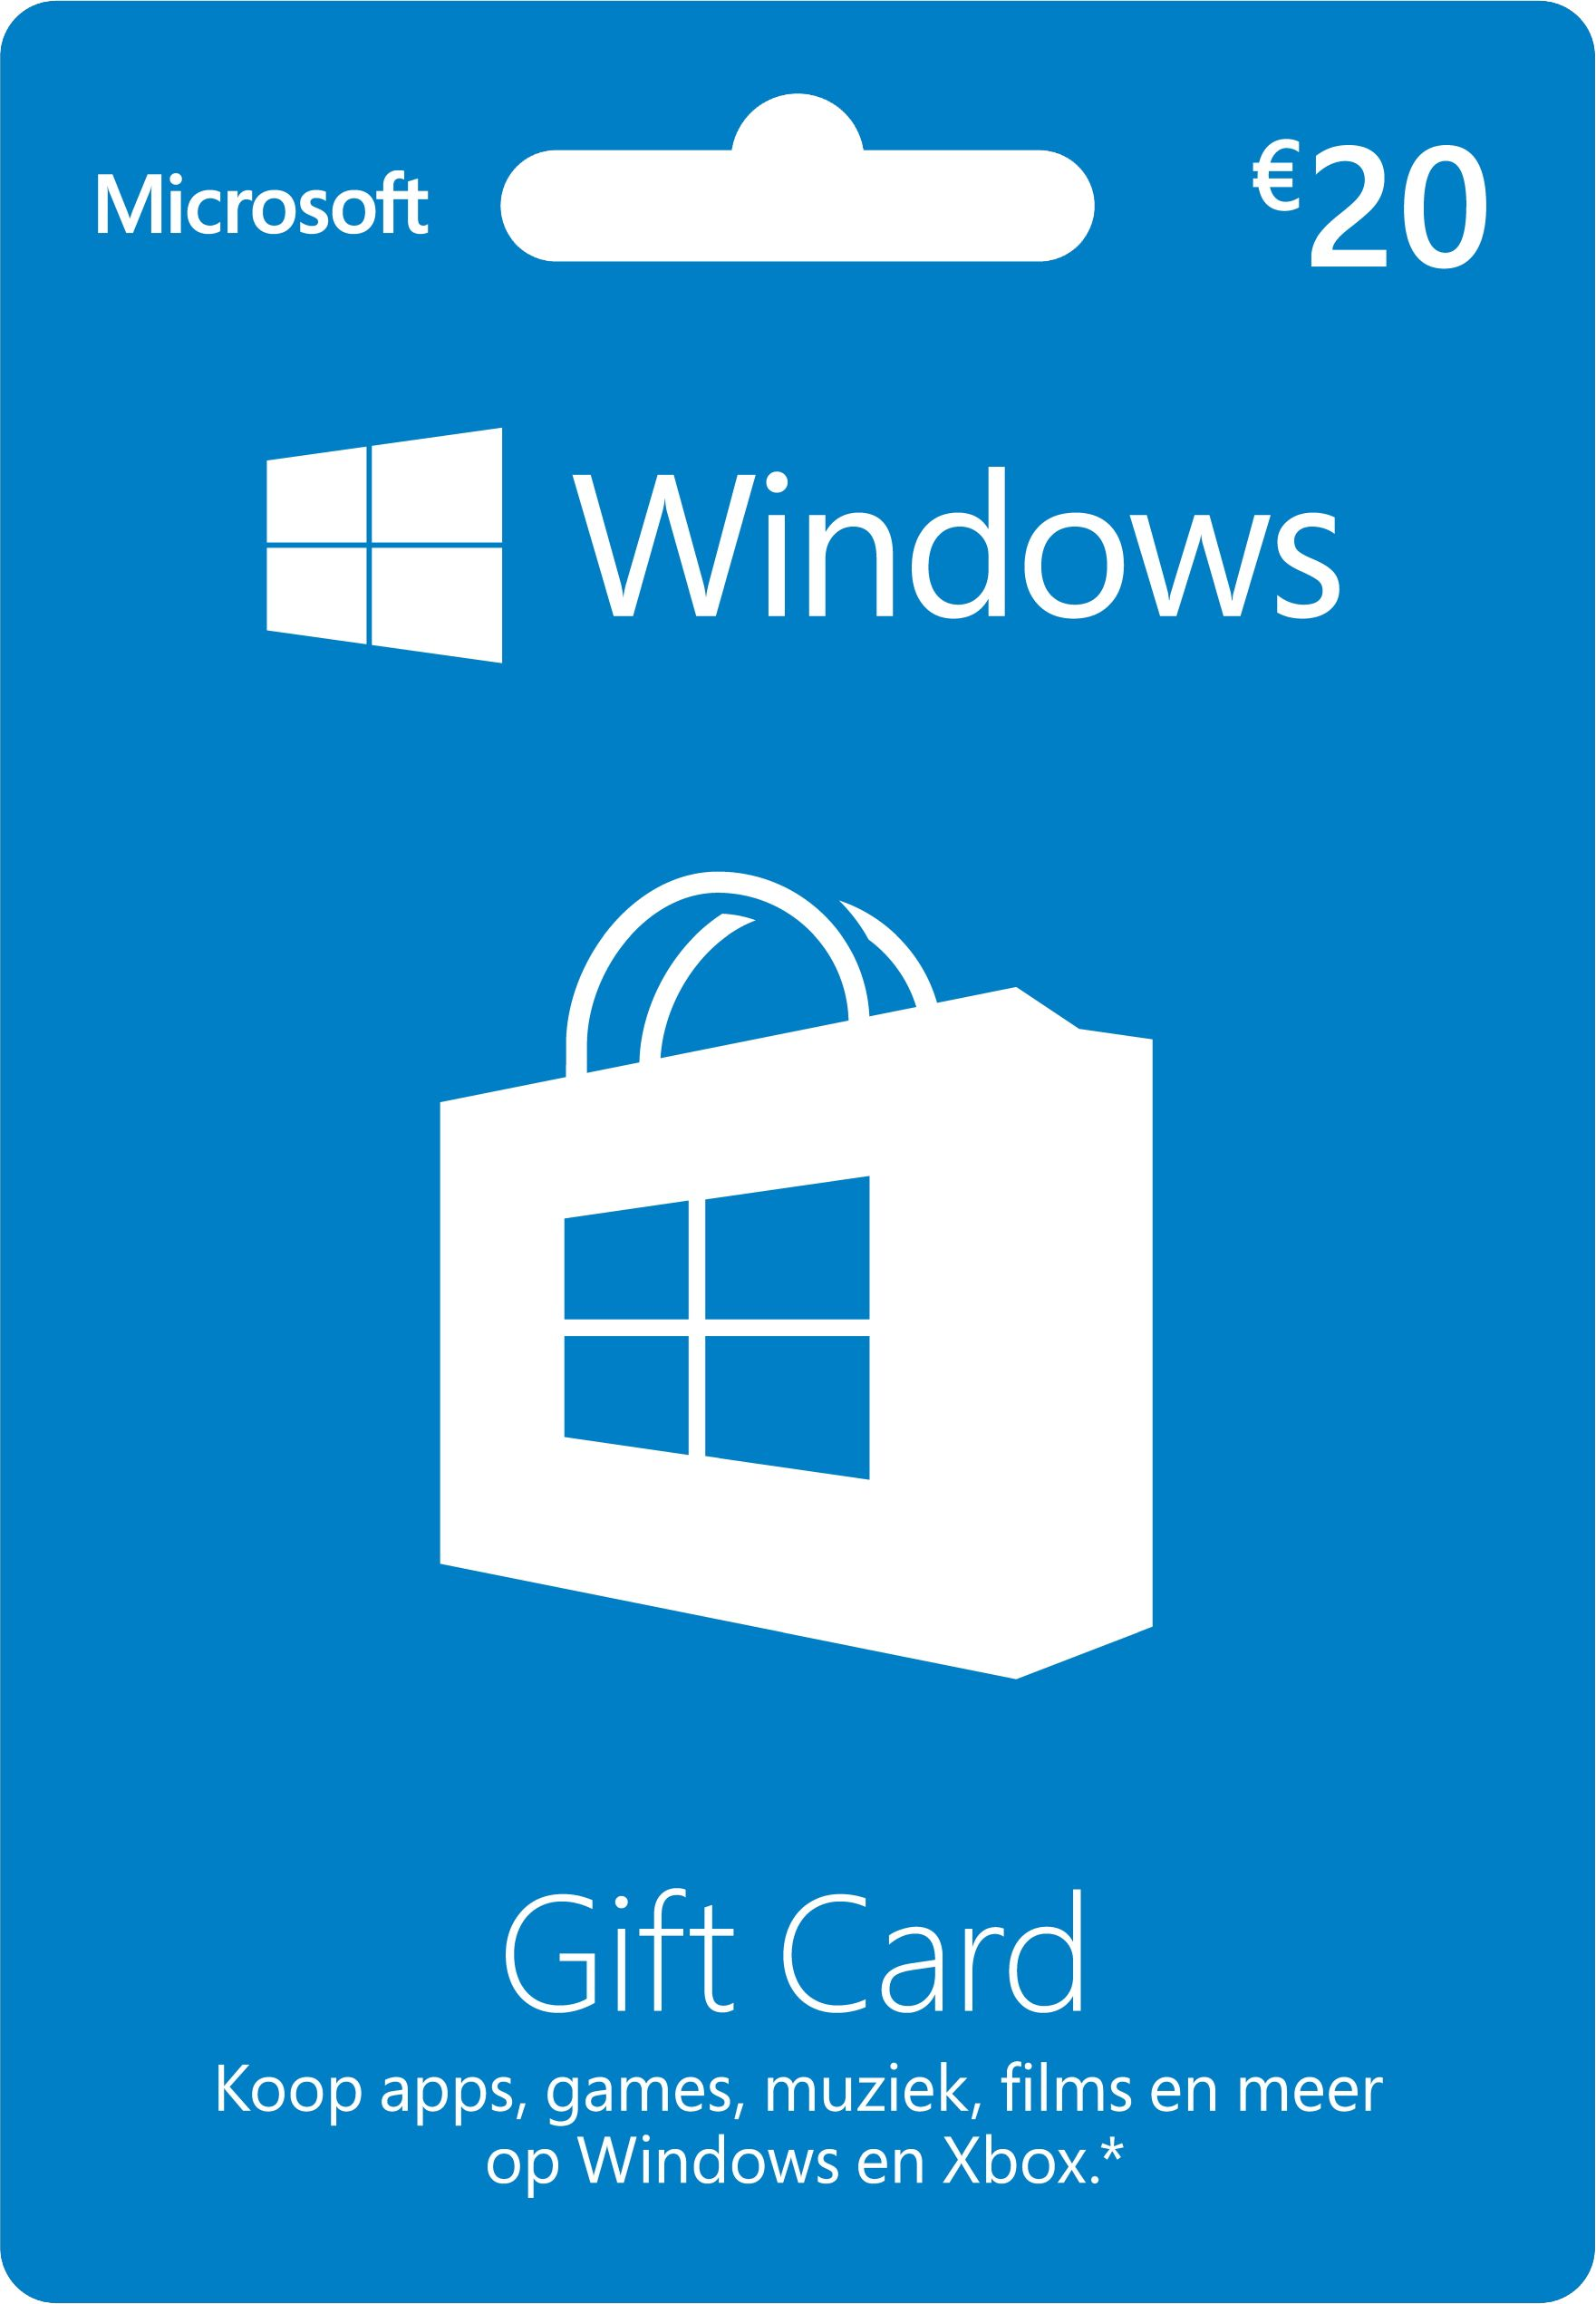 Windows Gift Card 20 euro